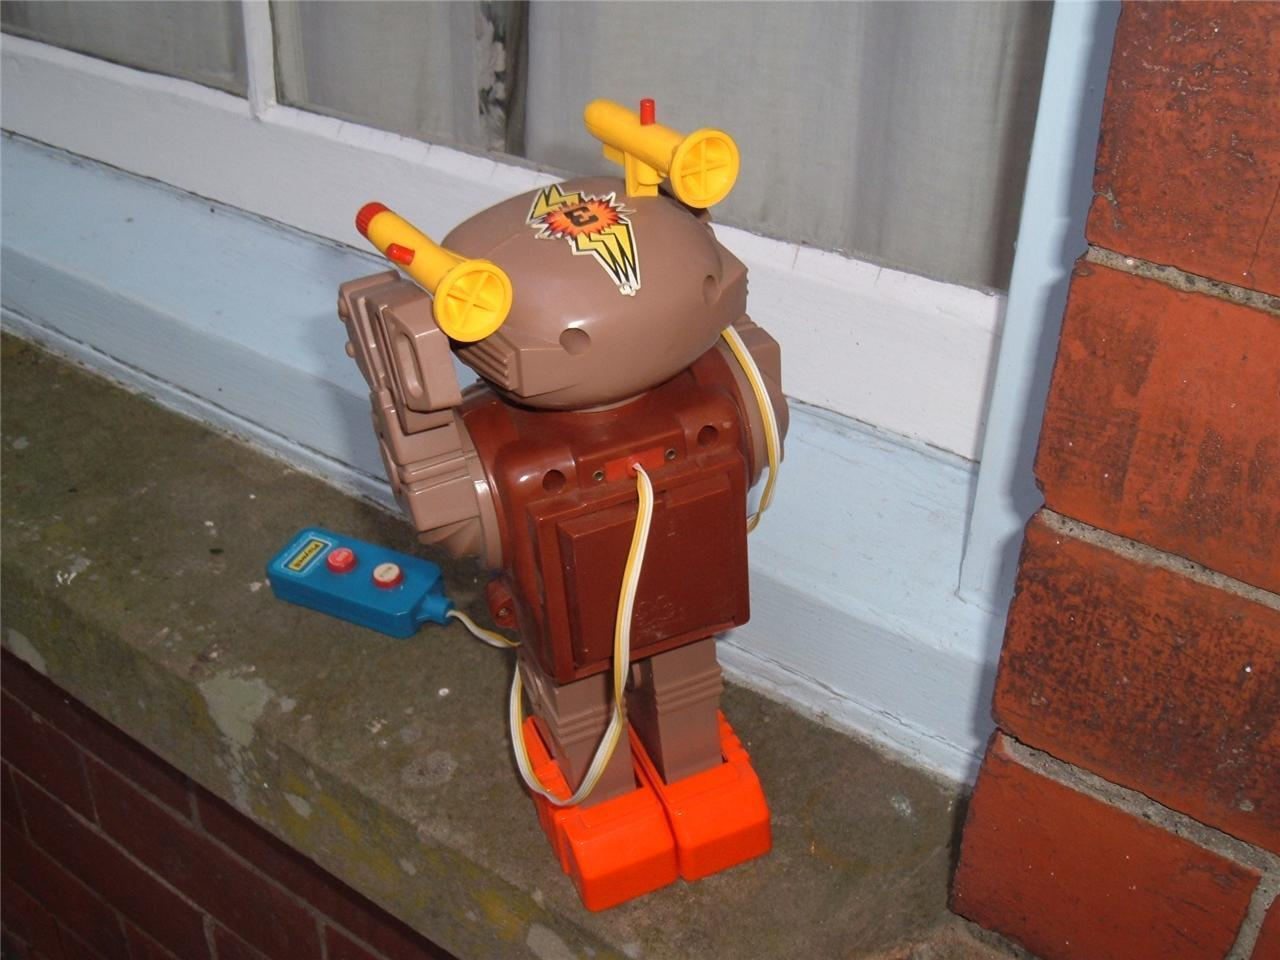 VINTAGE PLAYWELL SPACE COMMANDER TESTED ROBOT 1970'S HONG KONG NOT TESTED COMMANDER SPARES b55518